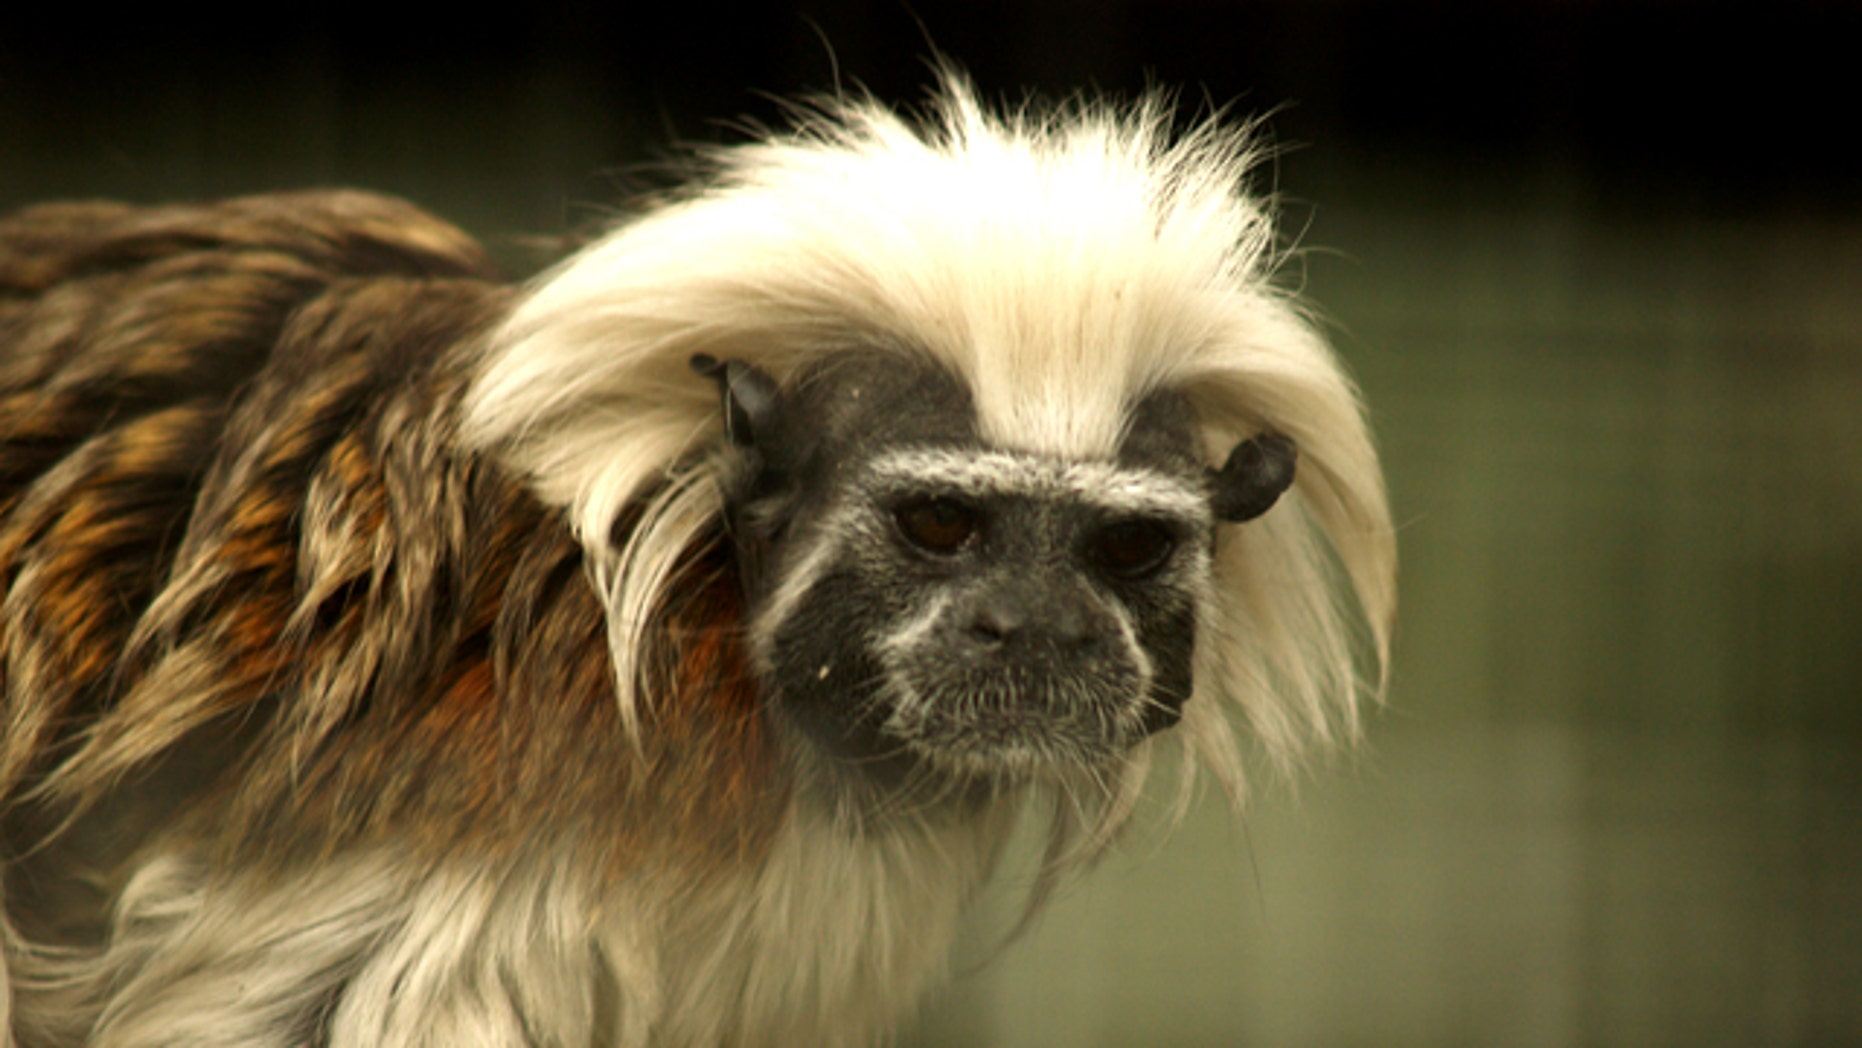 The Cottontop Tamarin (Saguinus oedipus) is a small monkey weighing less than 1lb.